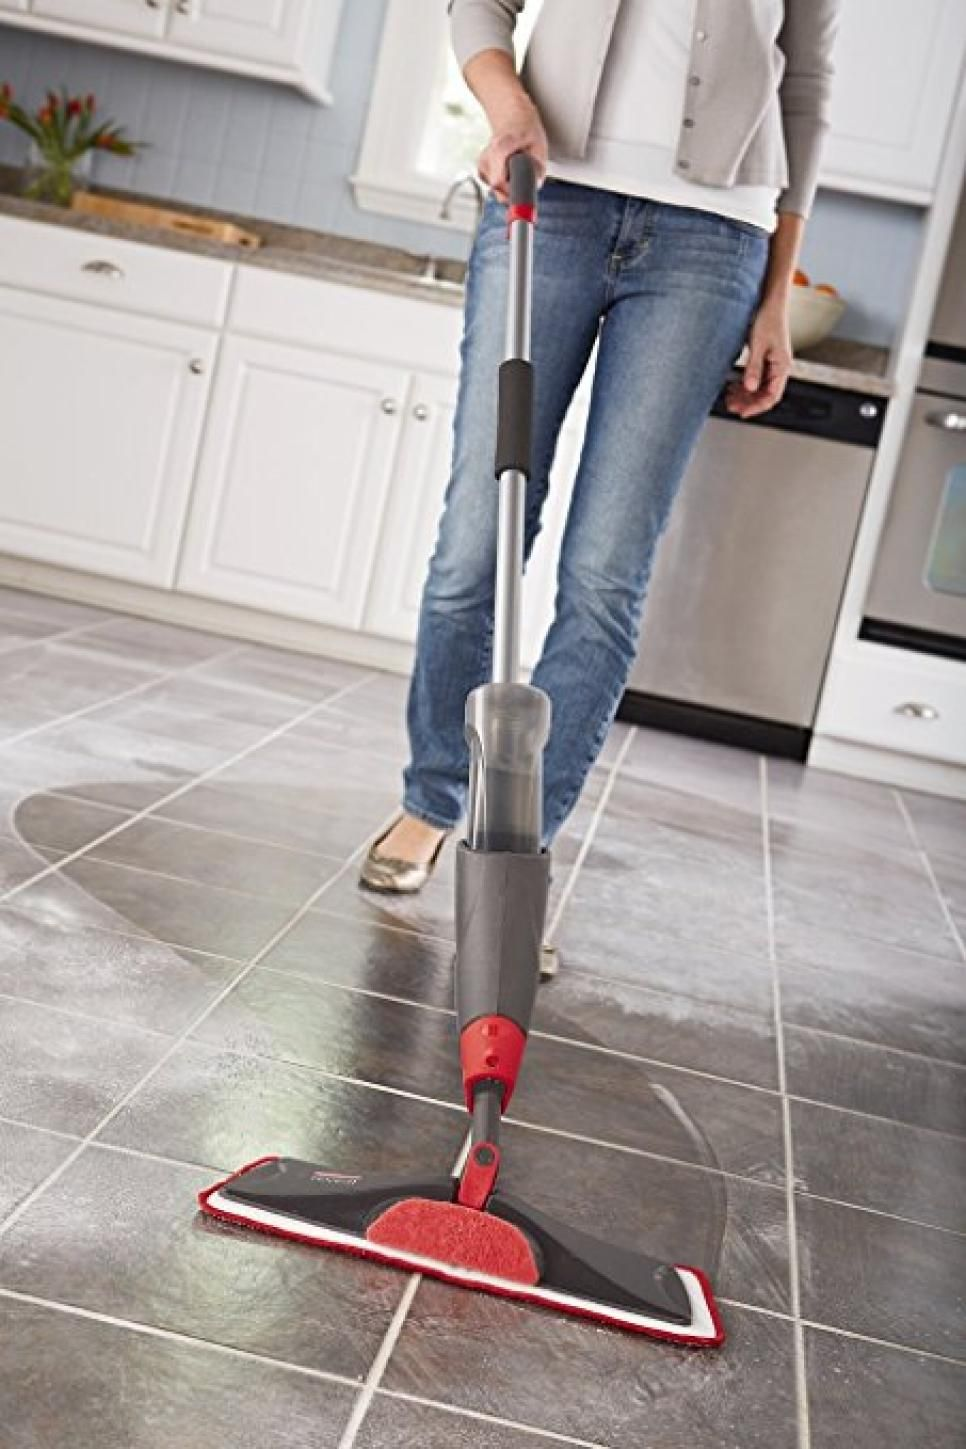 Genius Tools For Hard To Clean Places You Can Get On Amazon Hgtv